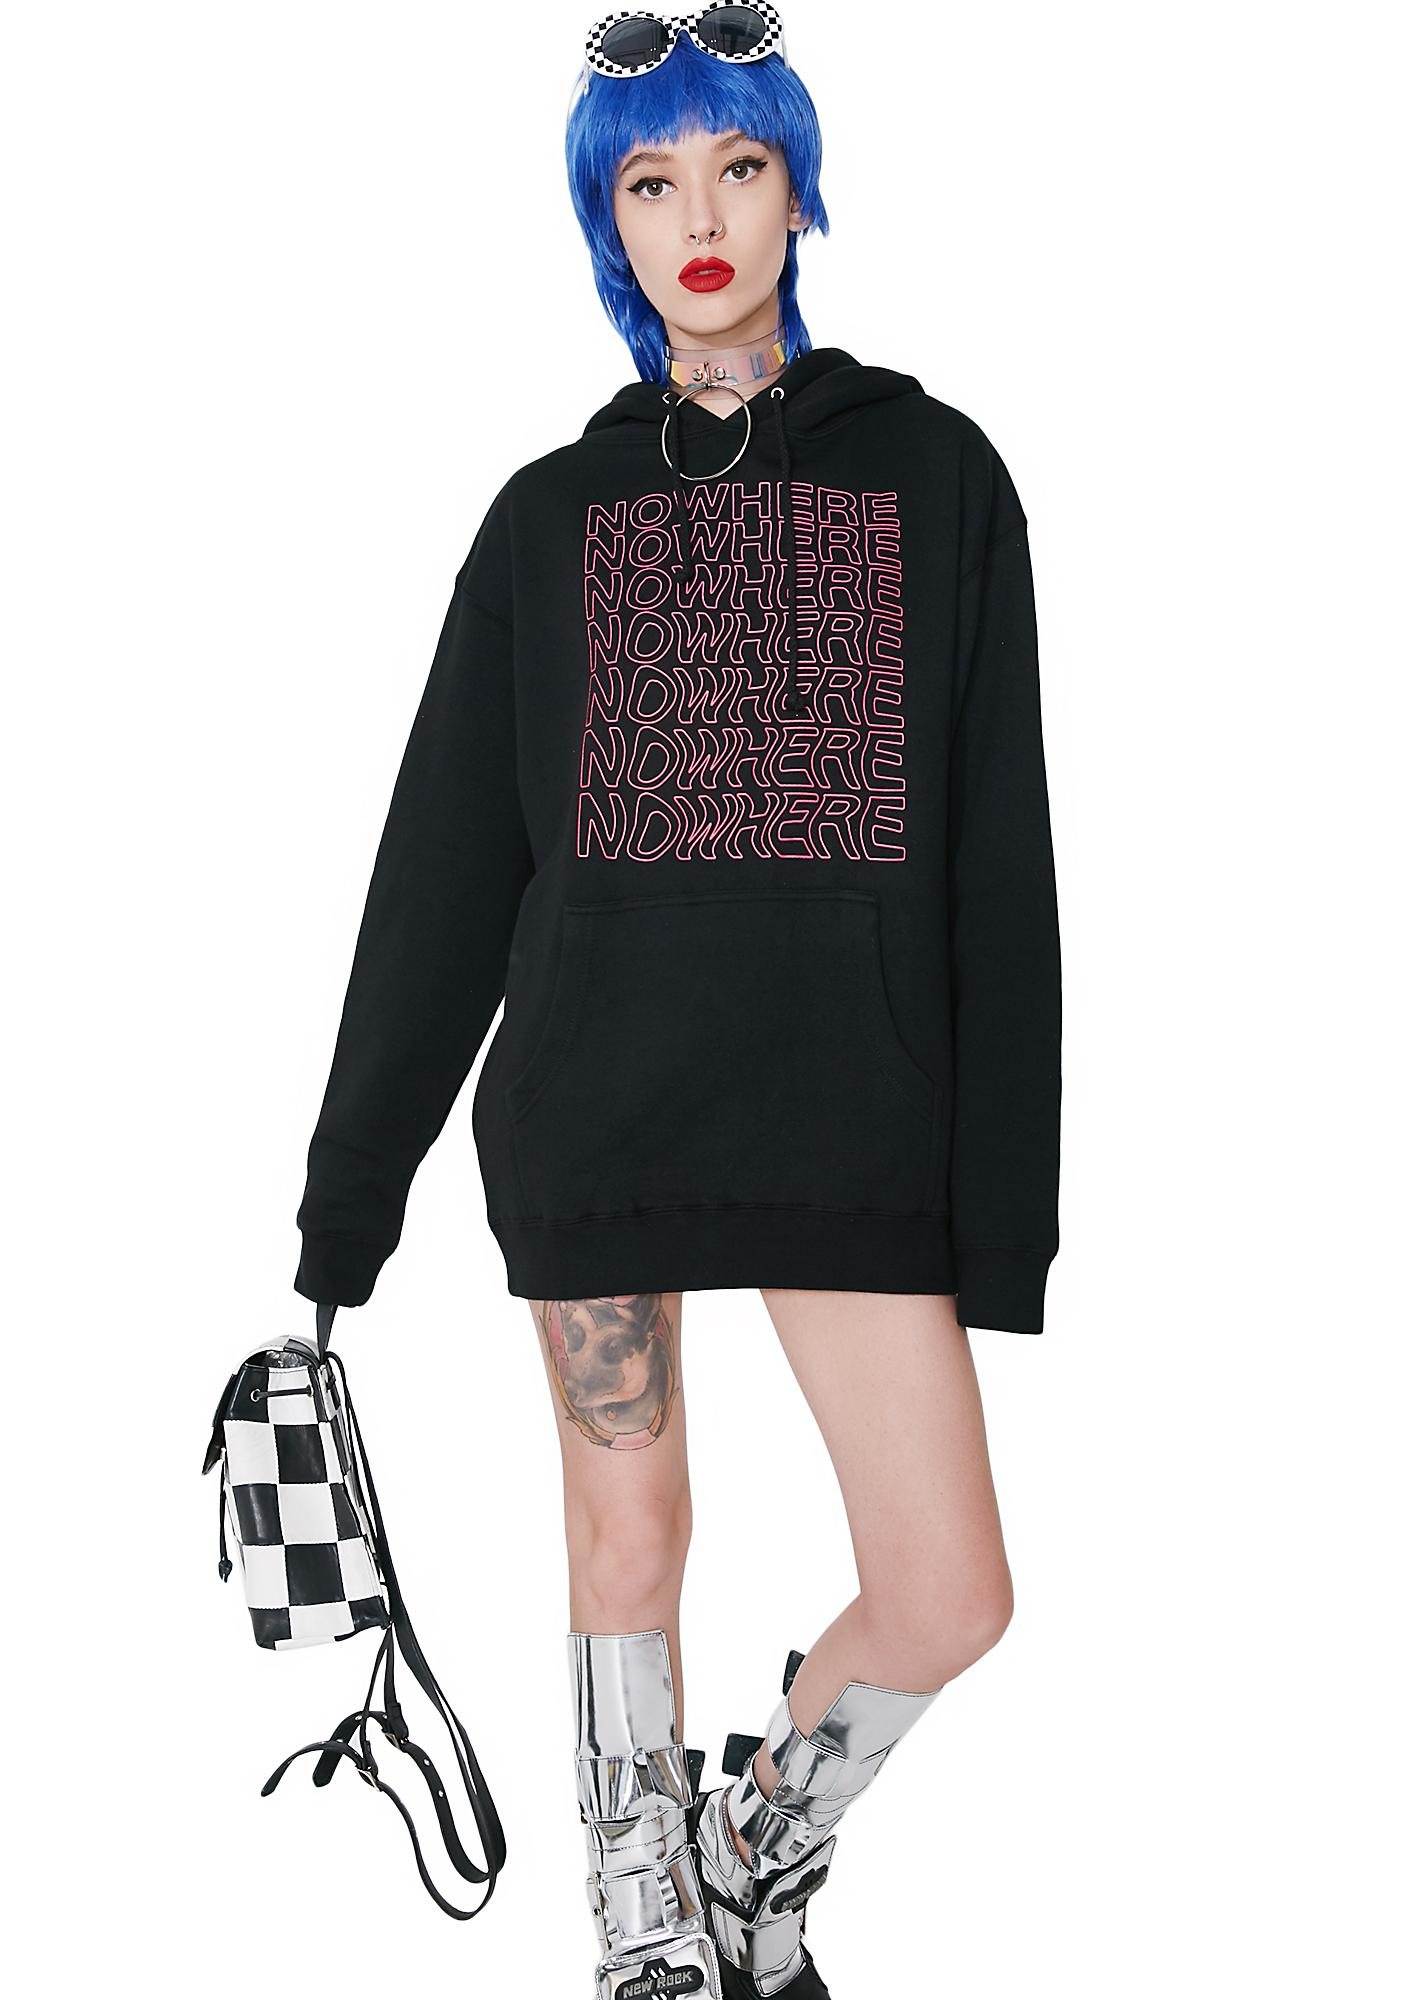 NO WH3R3 Nowhere Hoodie